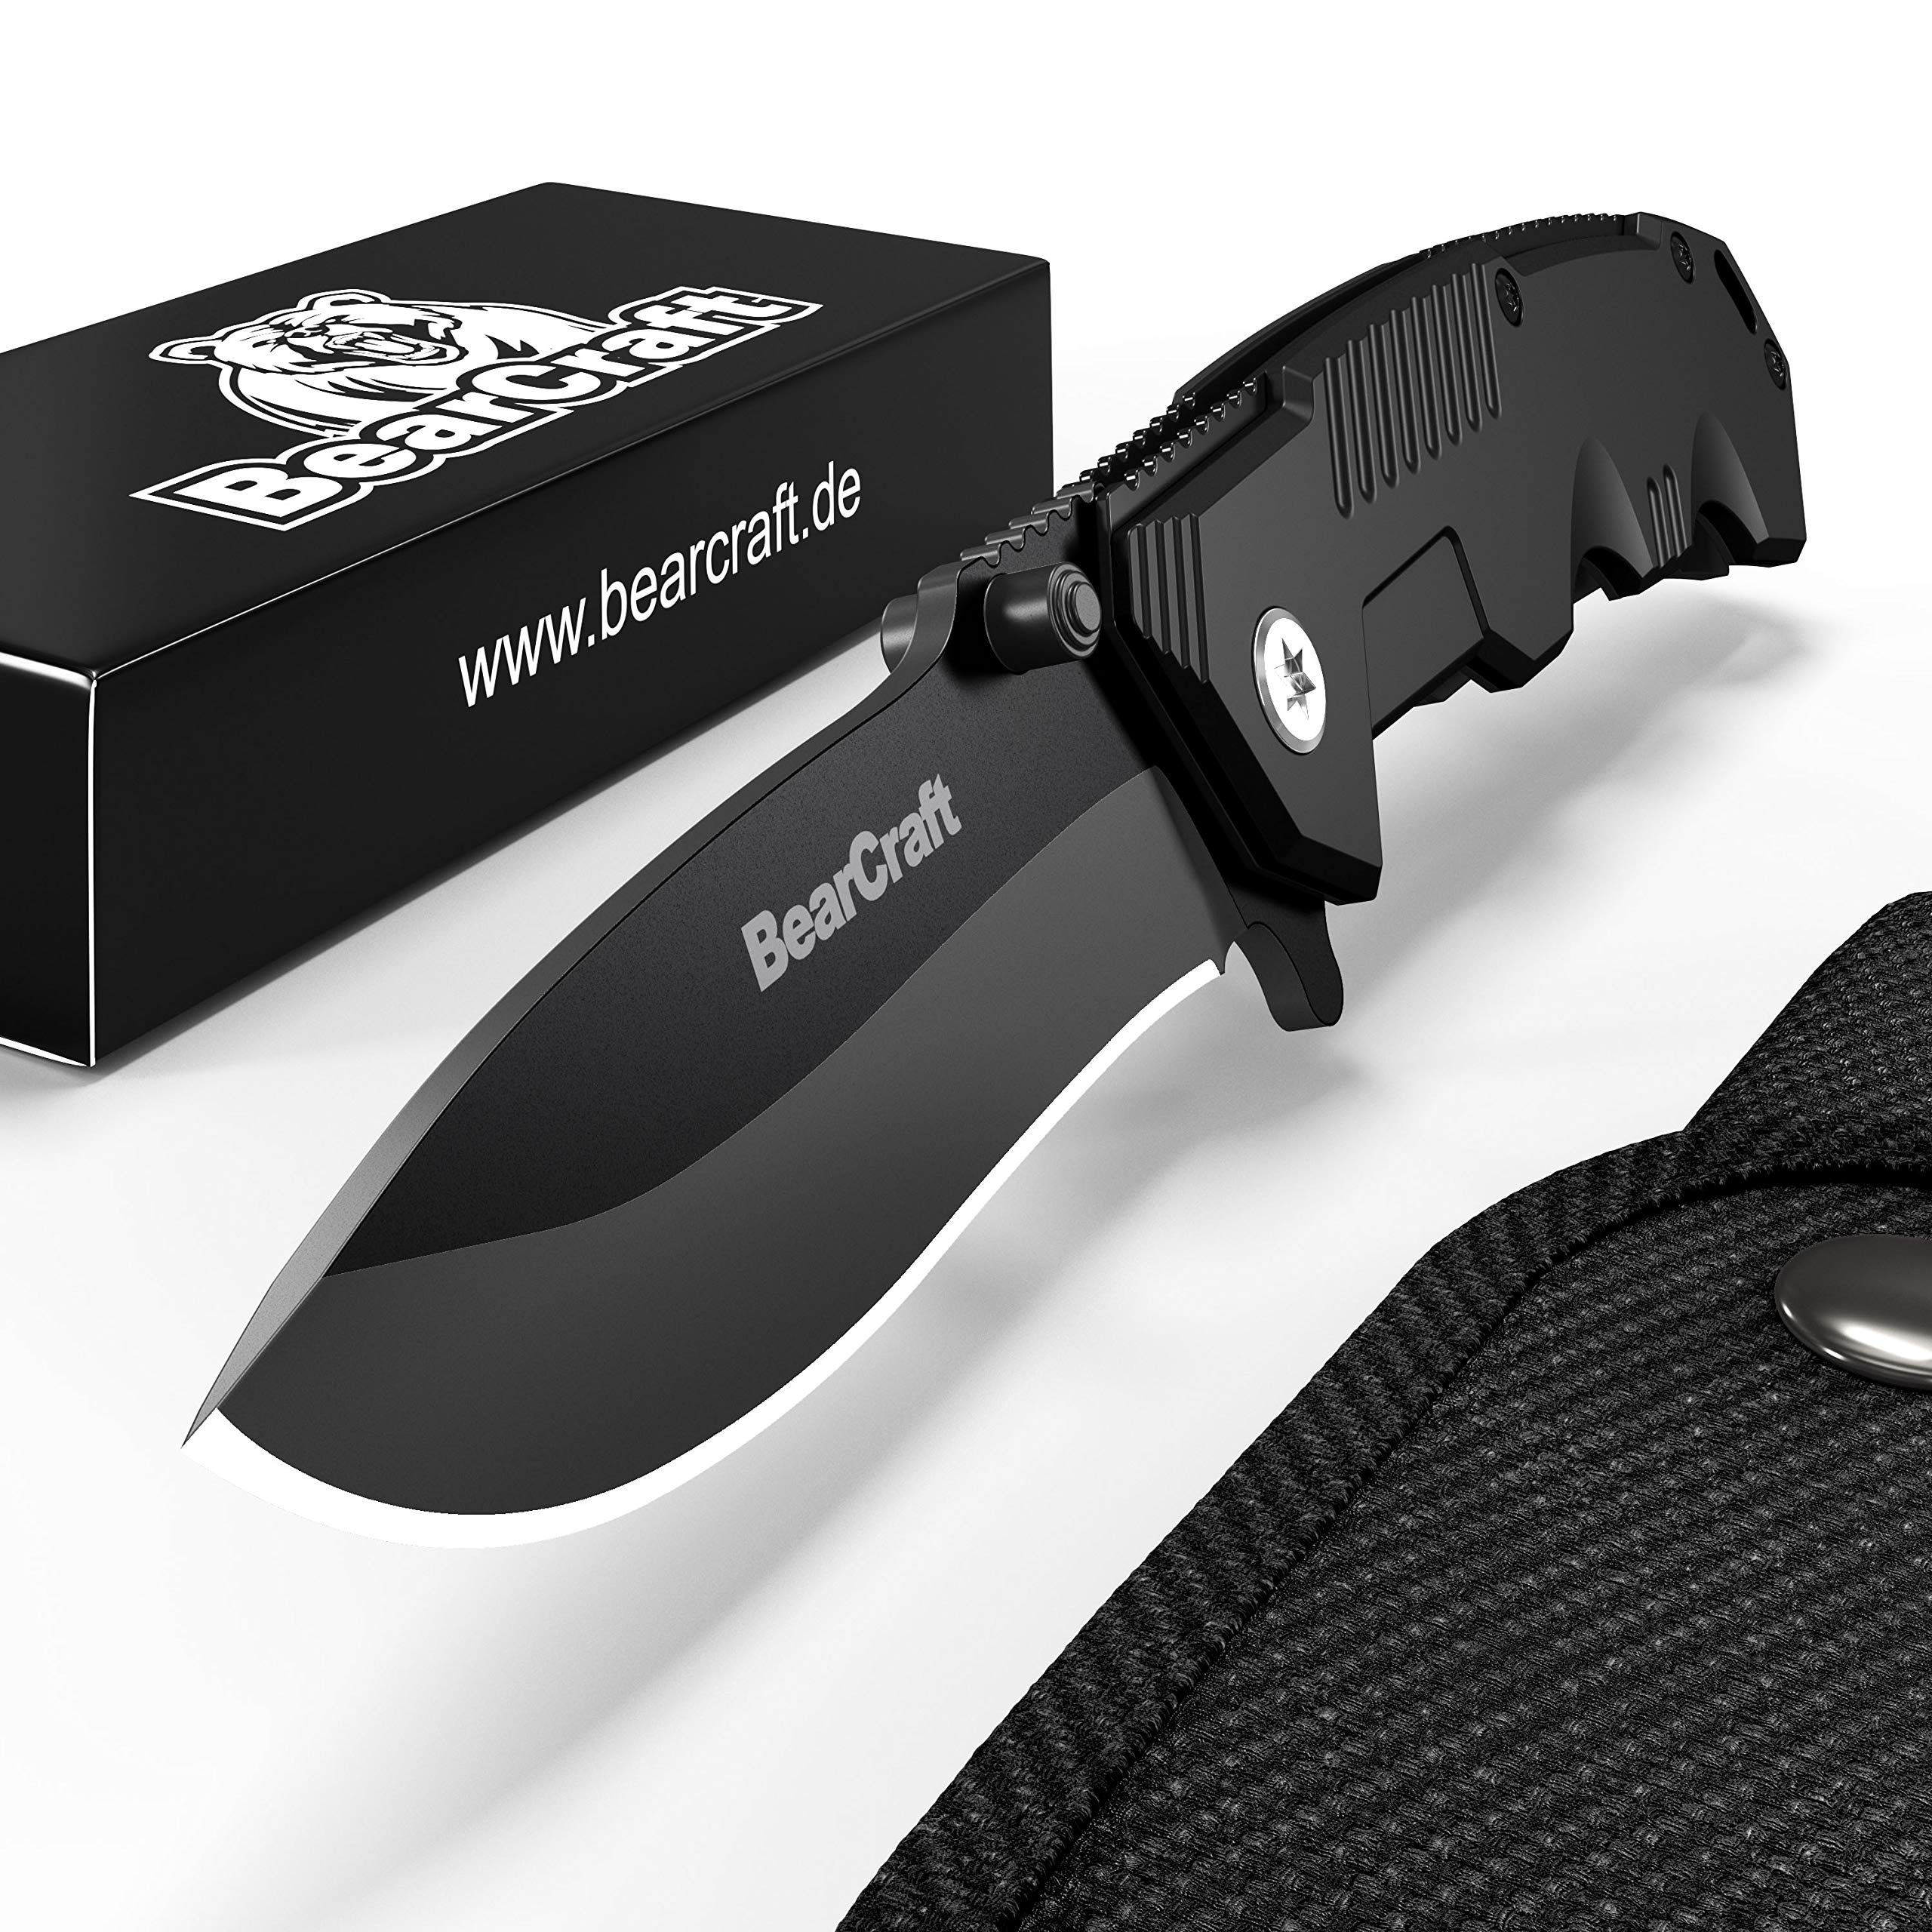 BearCraft Folding Knife in Matt Black inclusiveFREE eBook | Outdoor Survival Pocket Knife | Small one-Hand Knife with Stainless Steel Blade and Aluminum Handle| Perfect for Work Hiking Camping by BearCraft (Image #2)